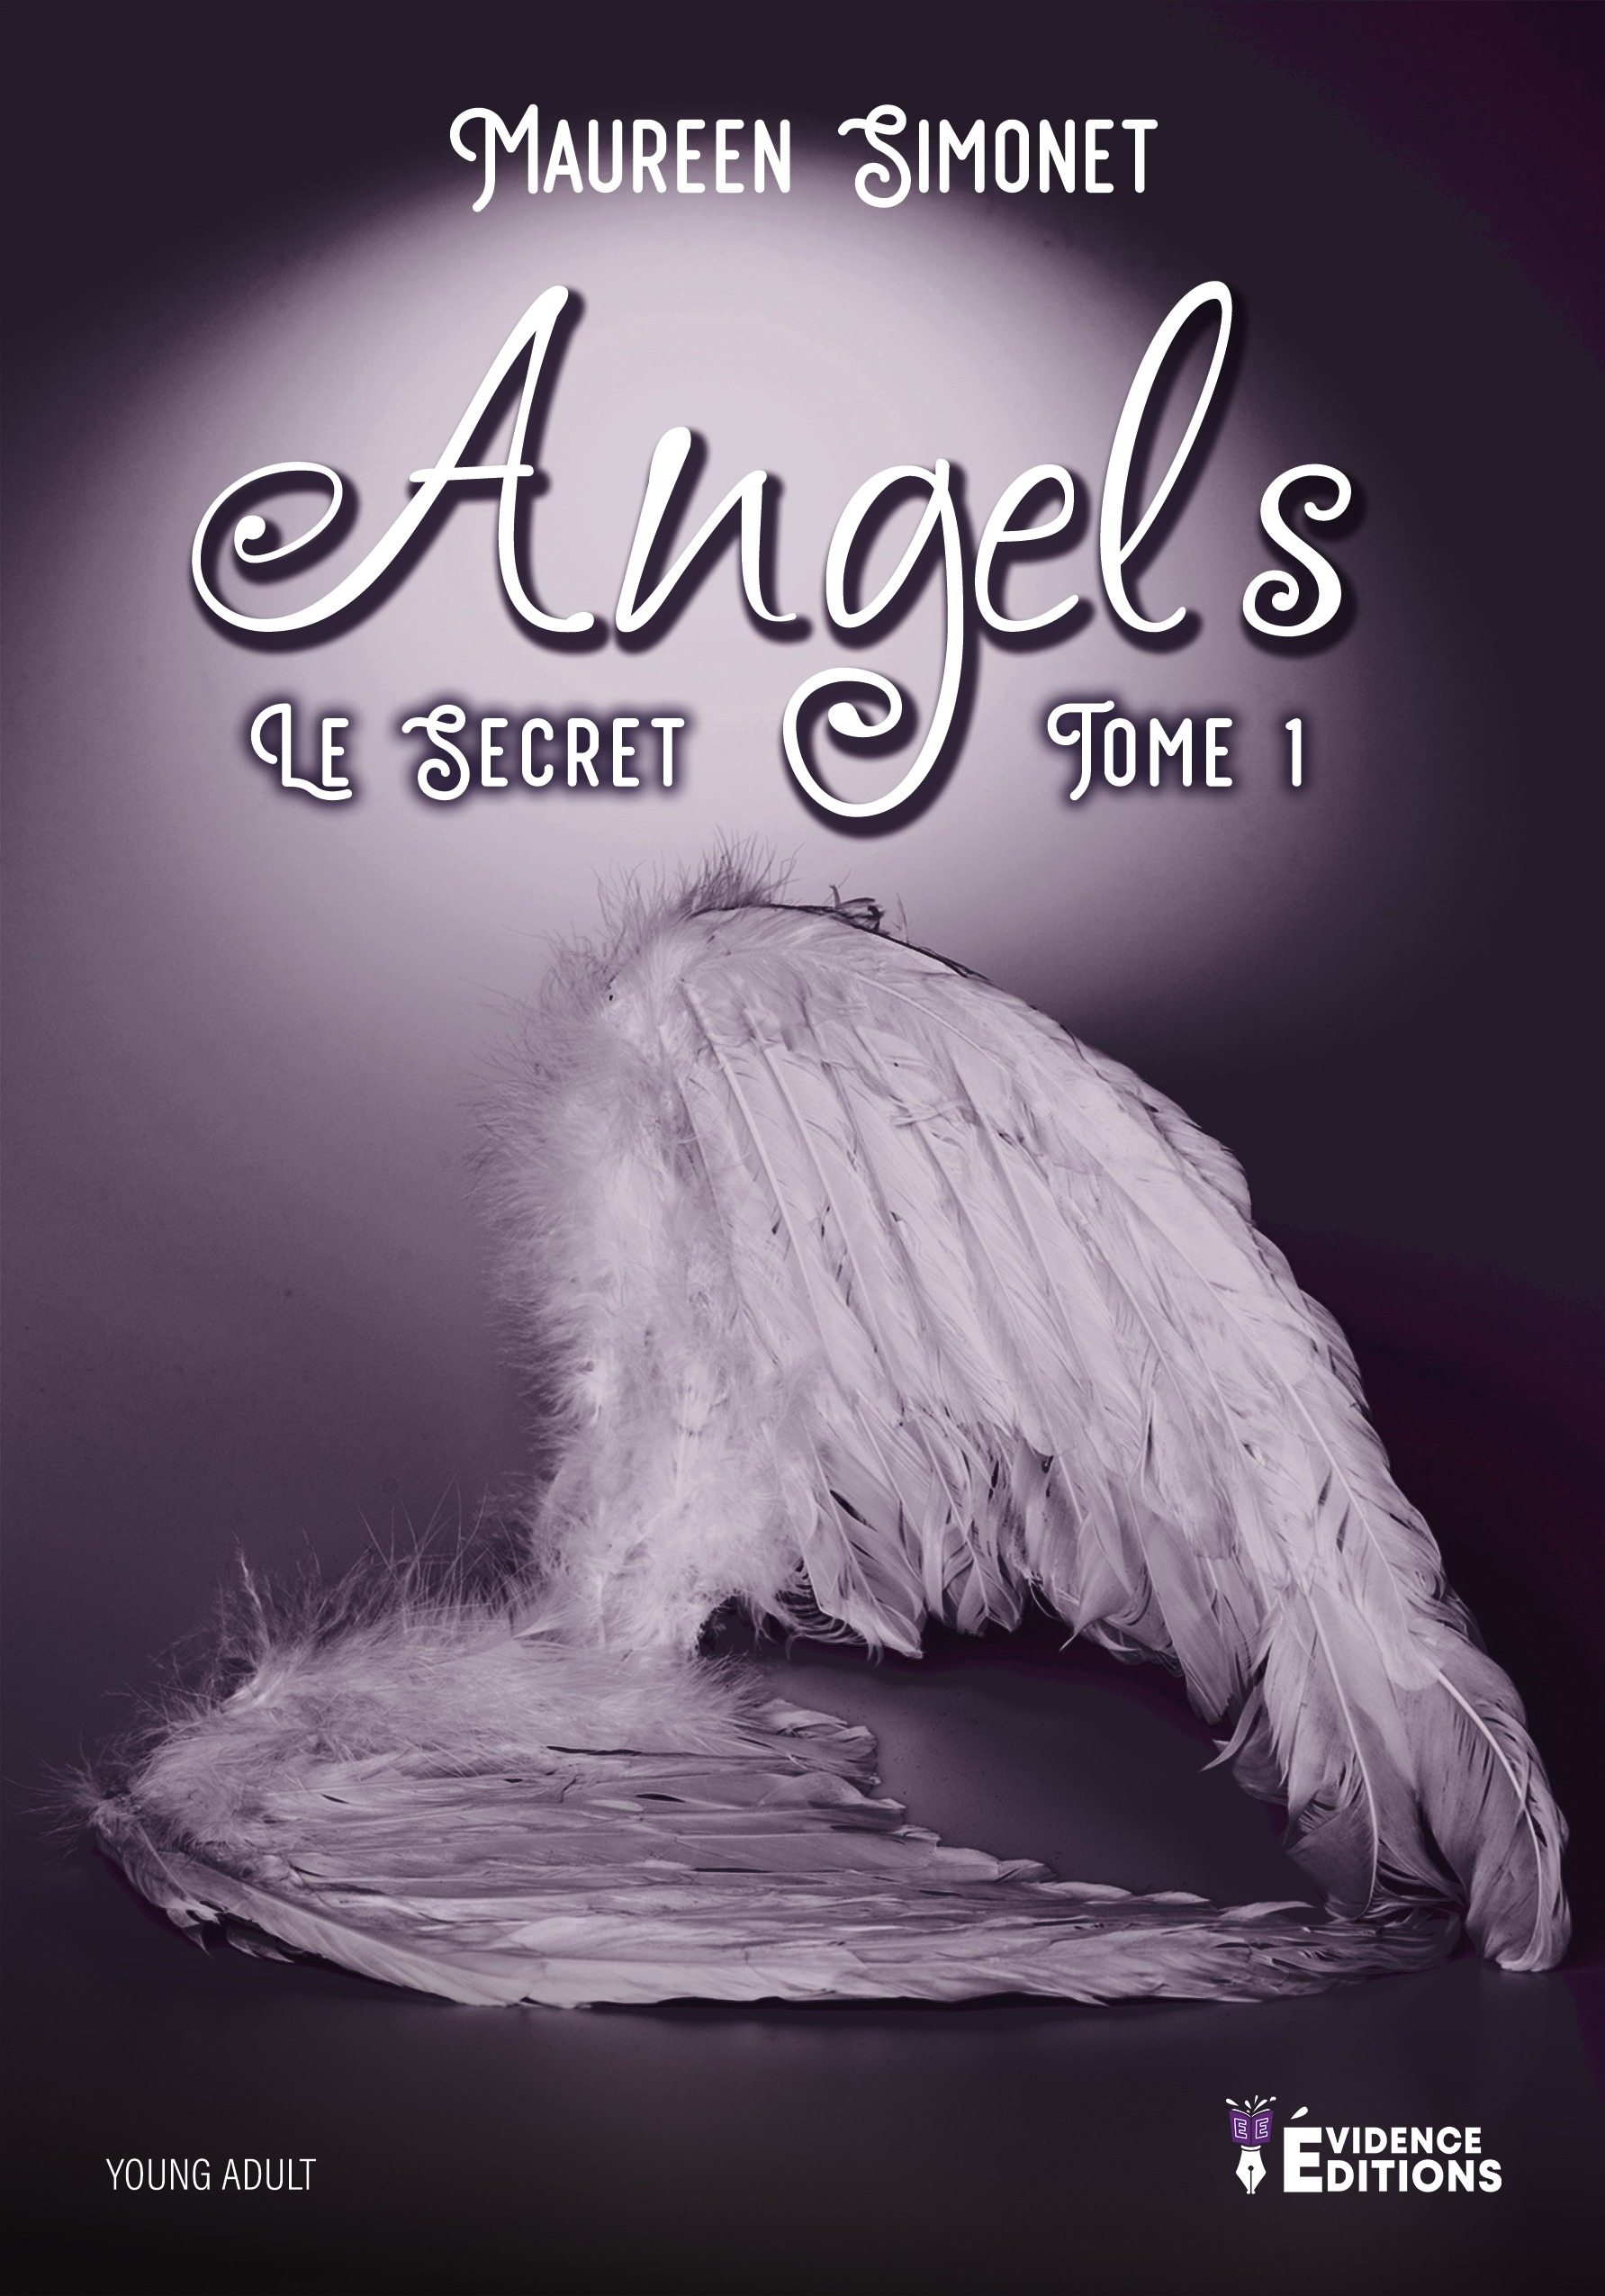 Angels tome 1